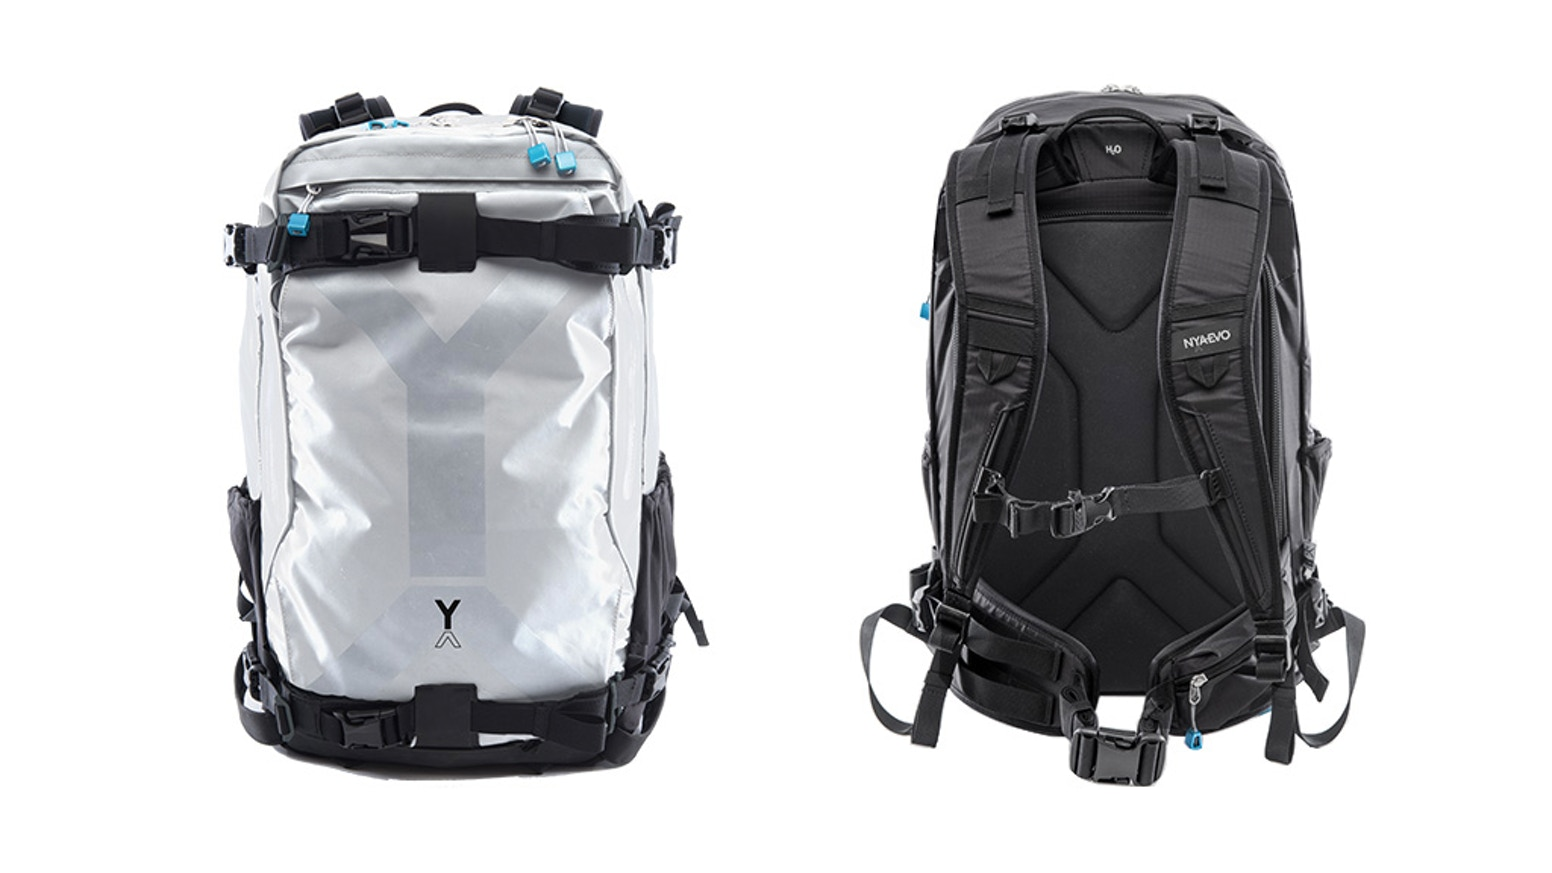 Designed for any adventure, adaptable to suit your various carry needs while keeping your gear protected in the harshest of conditions.